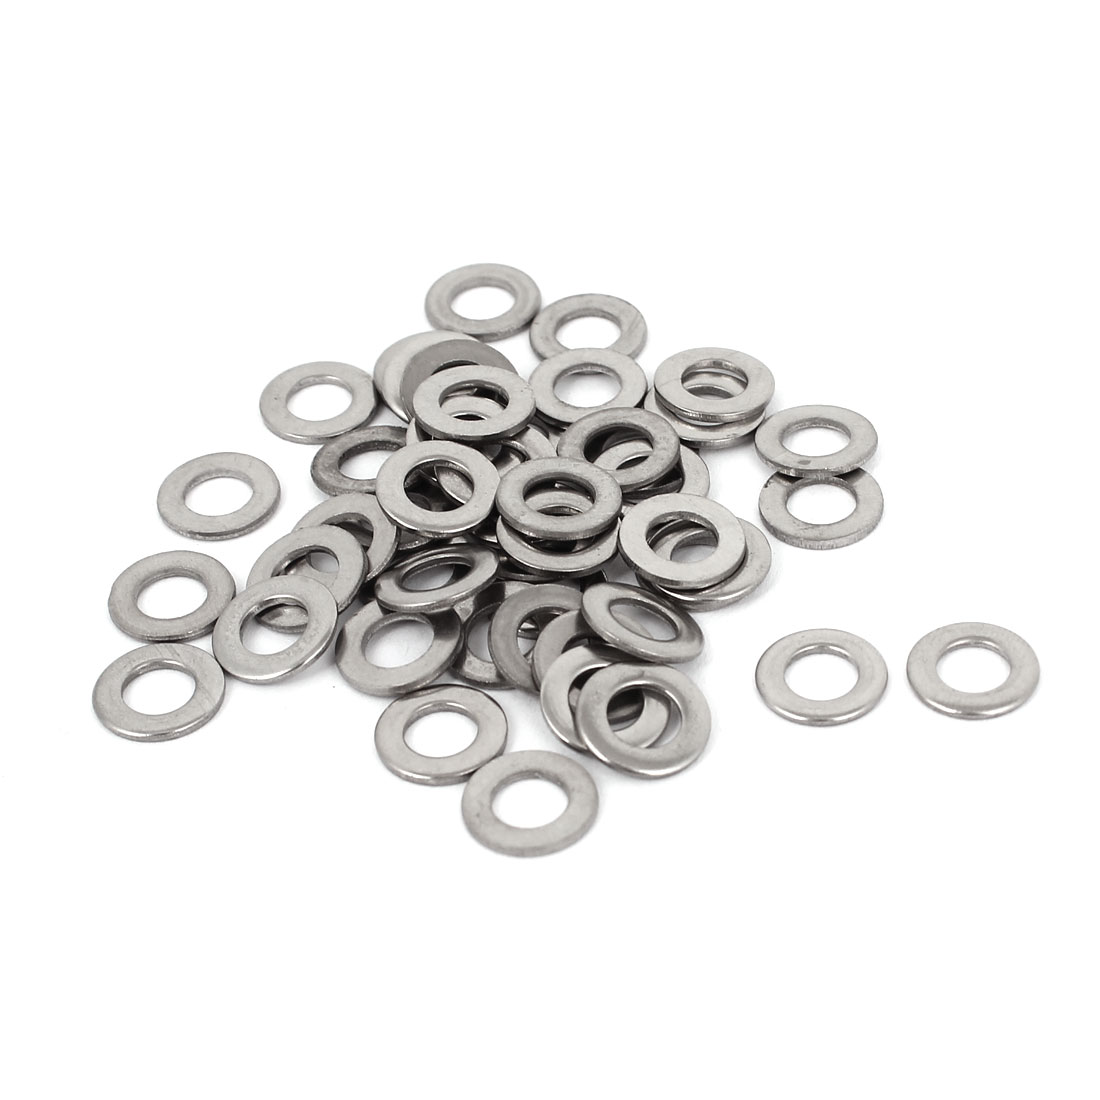 50pcs 304 Stainless Steel Flat Washer #10 Plain Spacer for Screws Bolts